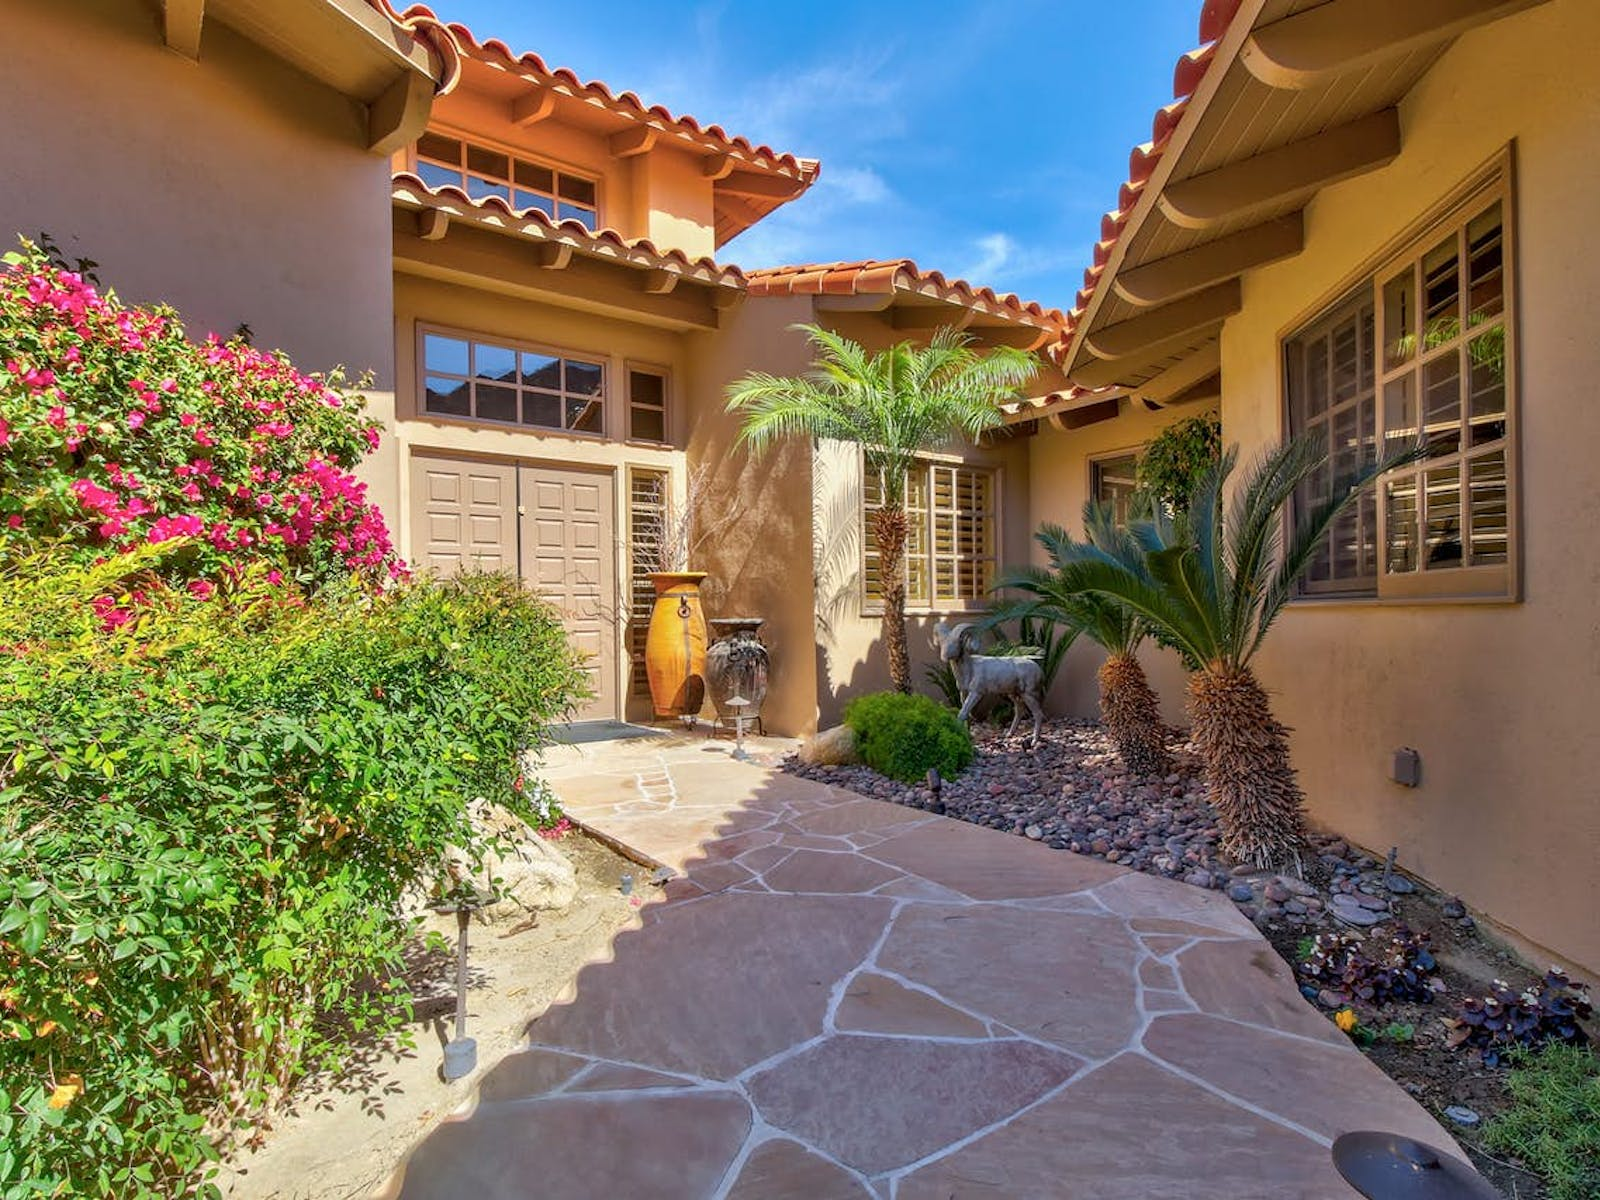 Vacation rental in Coachella Valley, CA